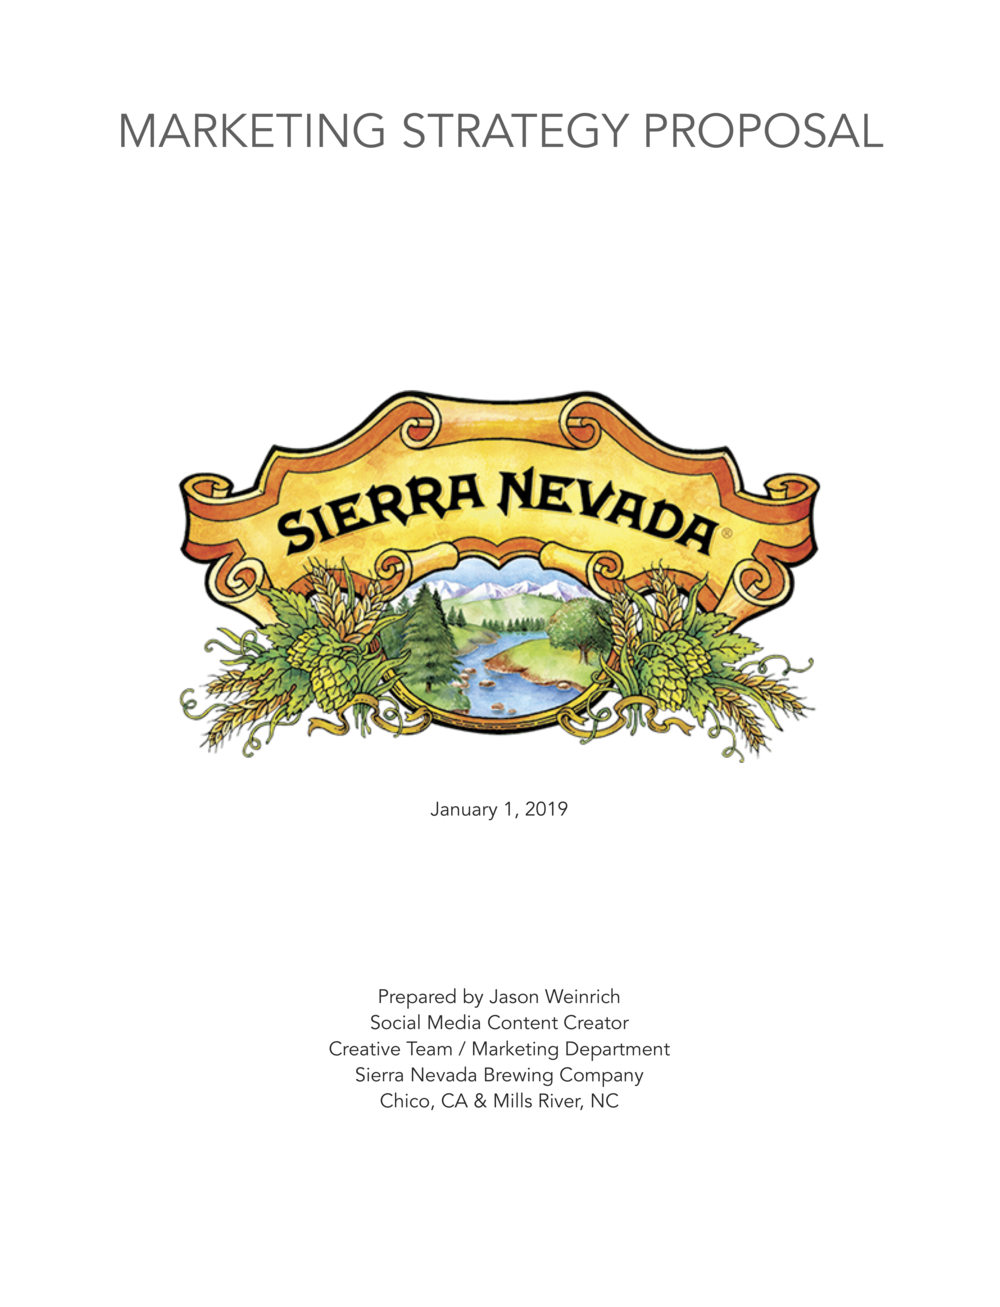 Marketing Proposal for Sierra Nevada Brewing Company.png